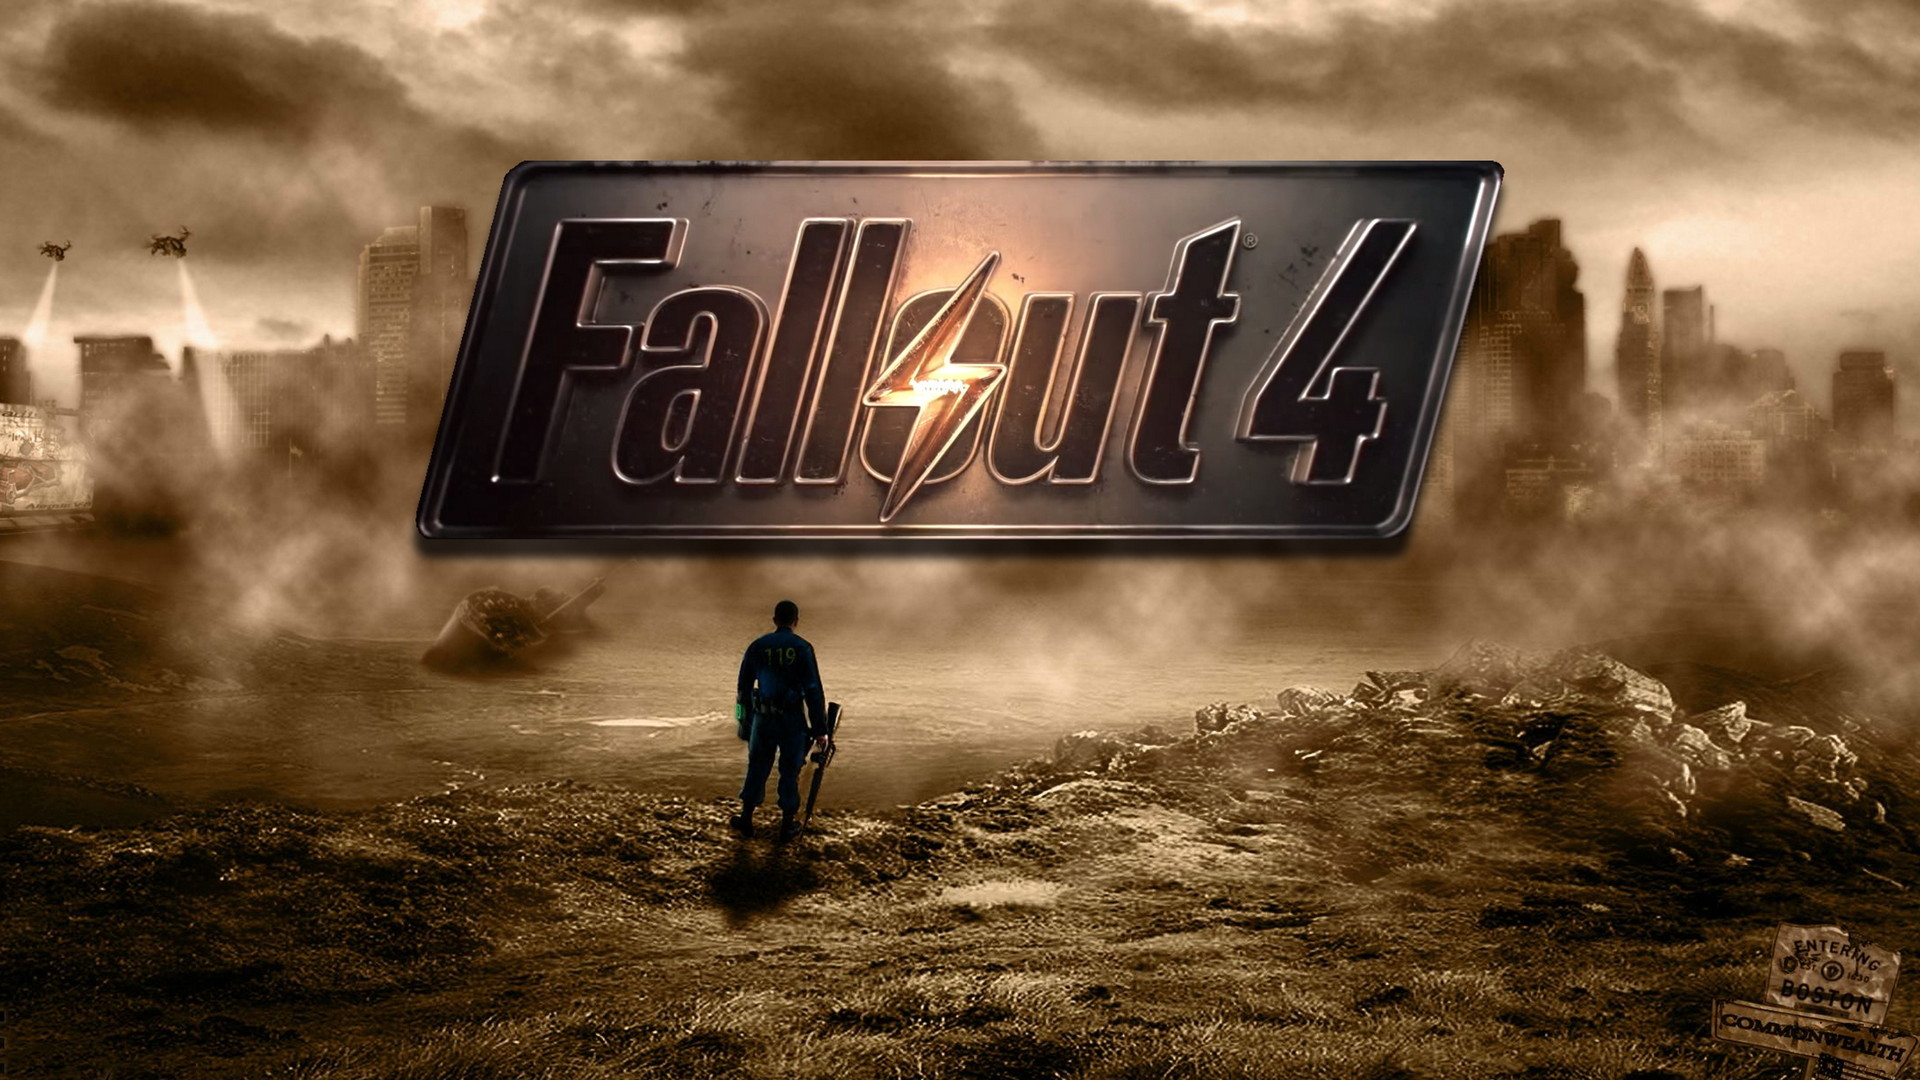 Res: 1920x1080, Fallout 4 HD Wallpapers